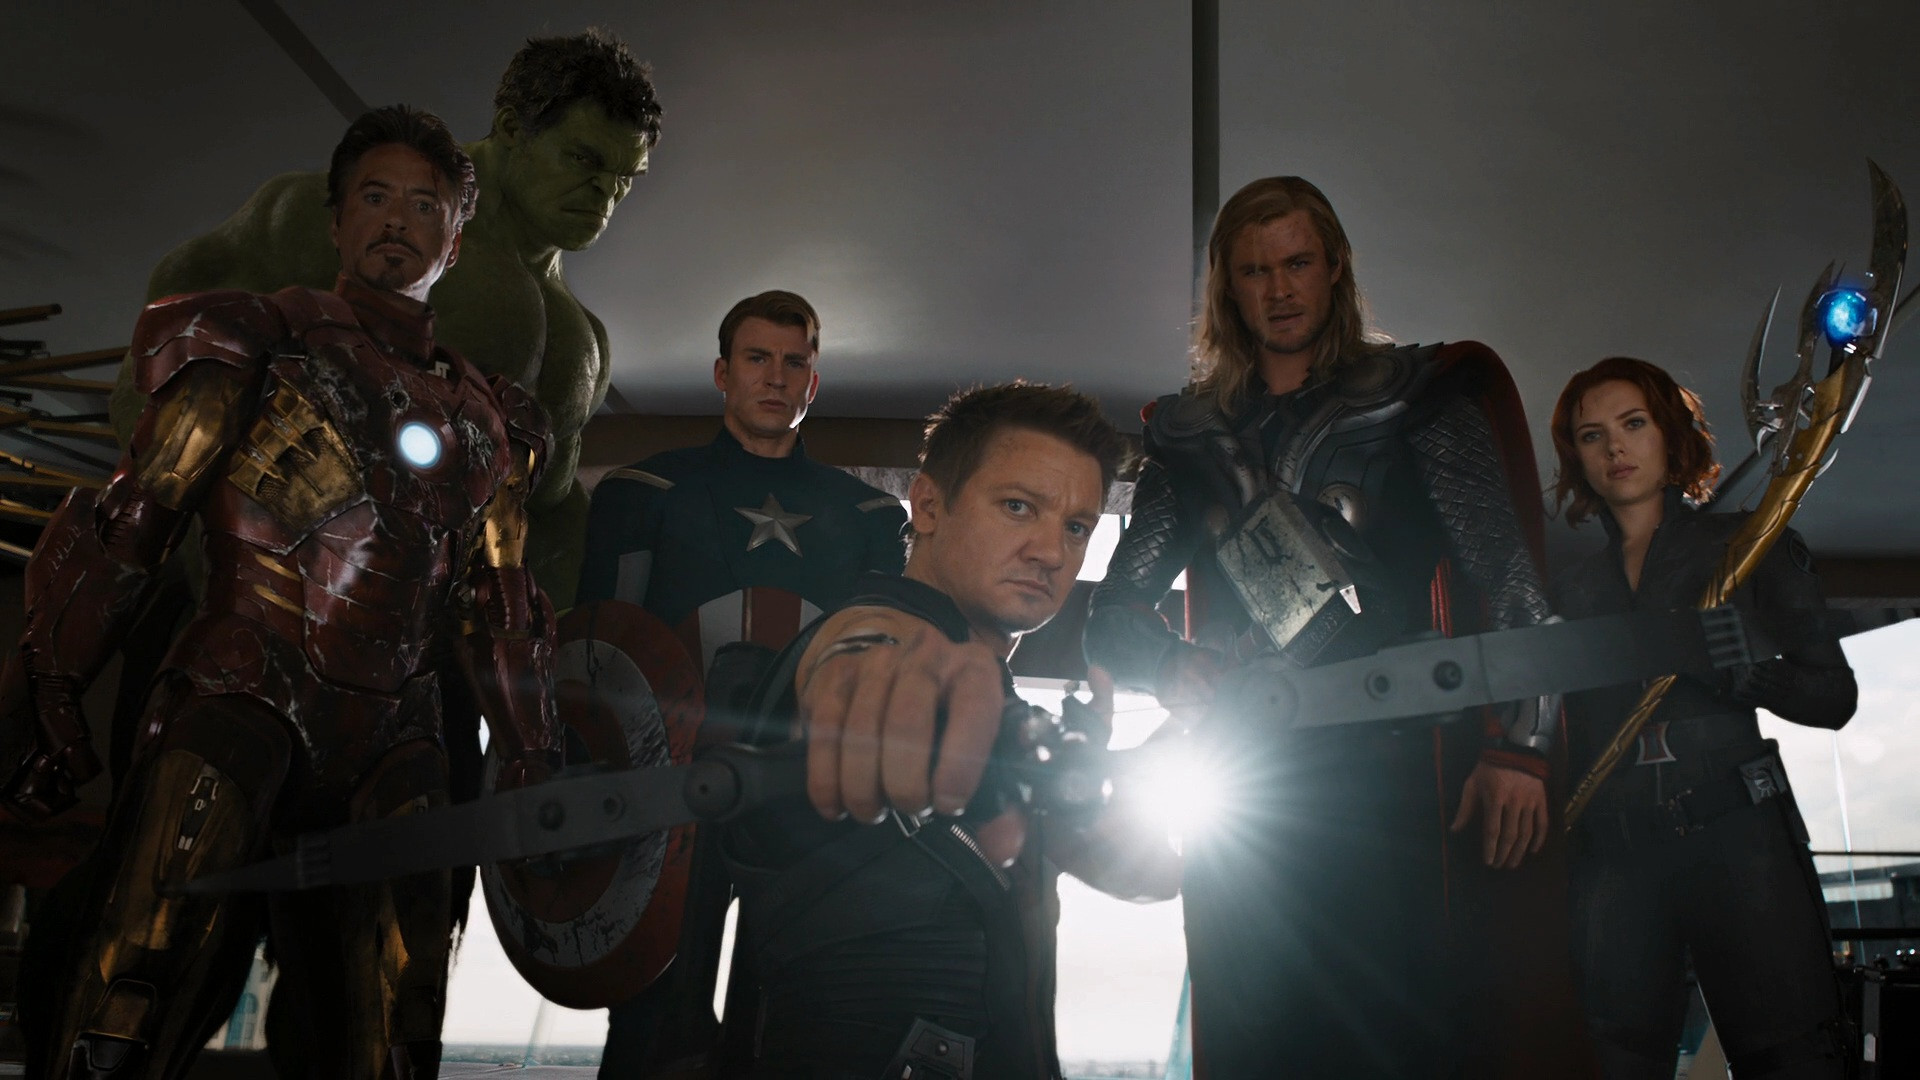 What Kevin Feige has actually said about the next Avengers movie